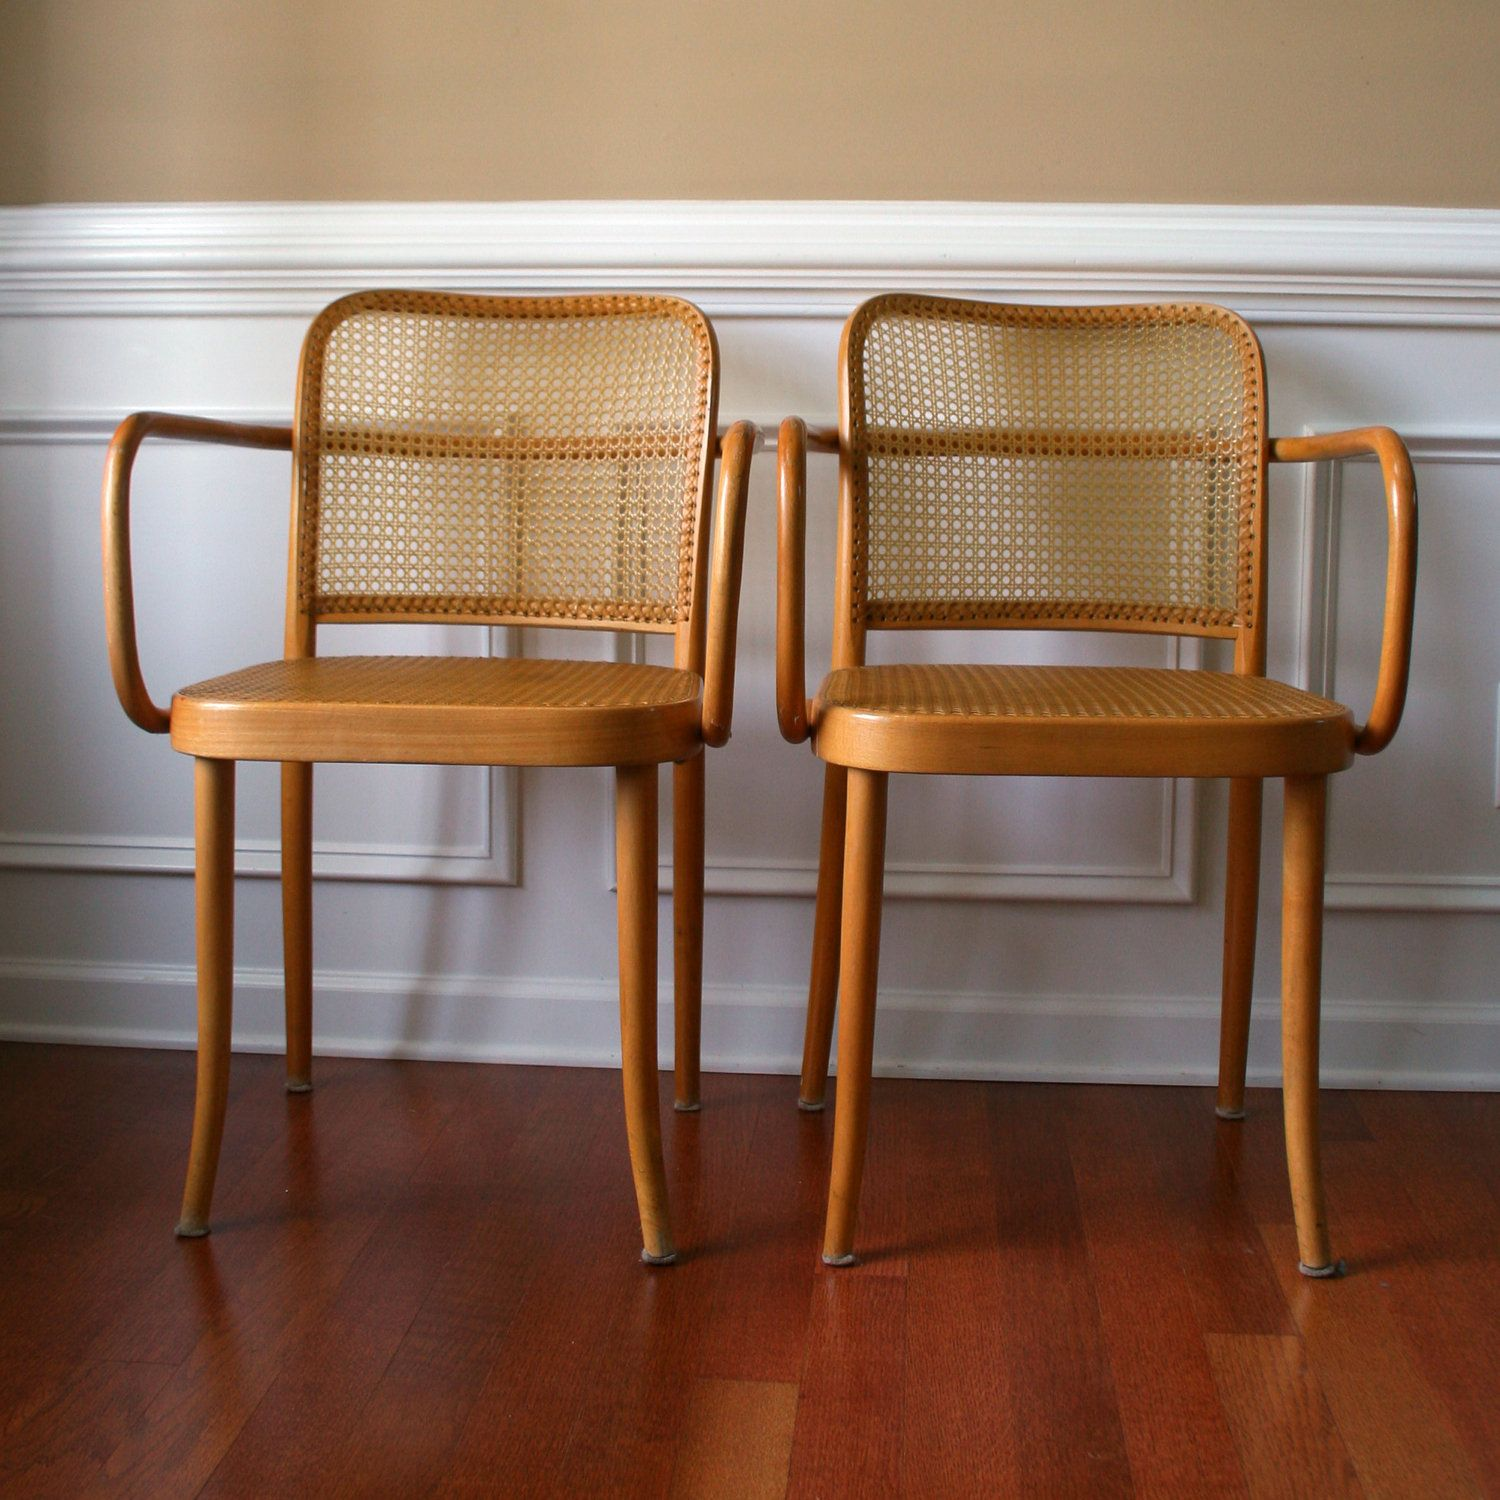 Charmant Image Result For Thonet Bentwood Chair Upholstered Mid Century Bentwood  Chairs, Wicker Dining Chairs